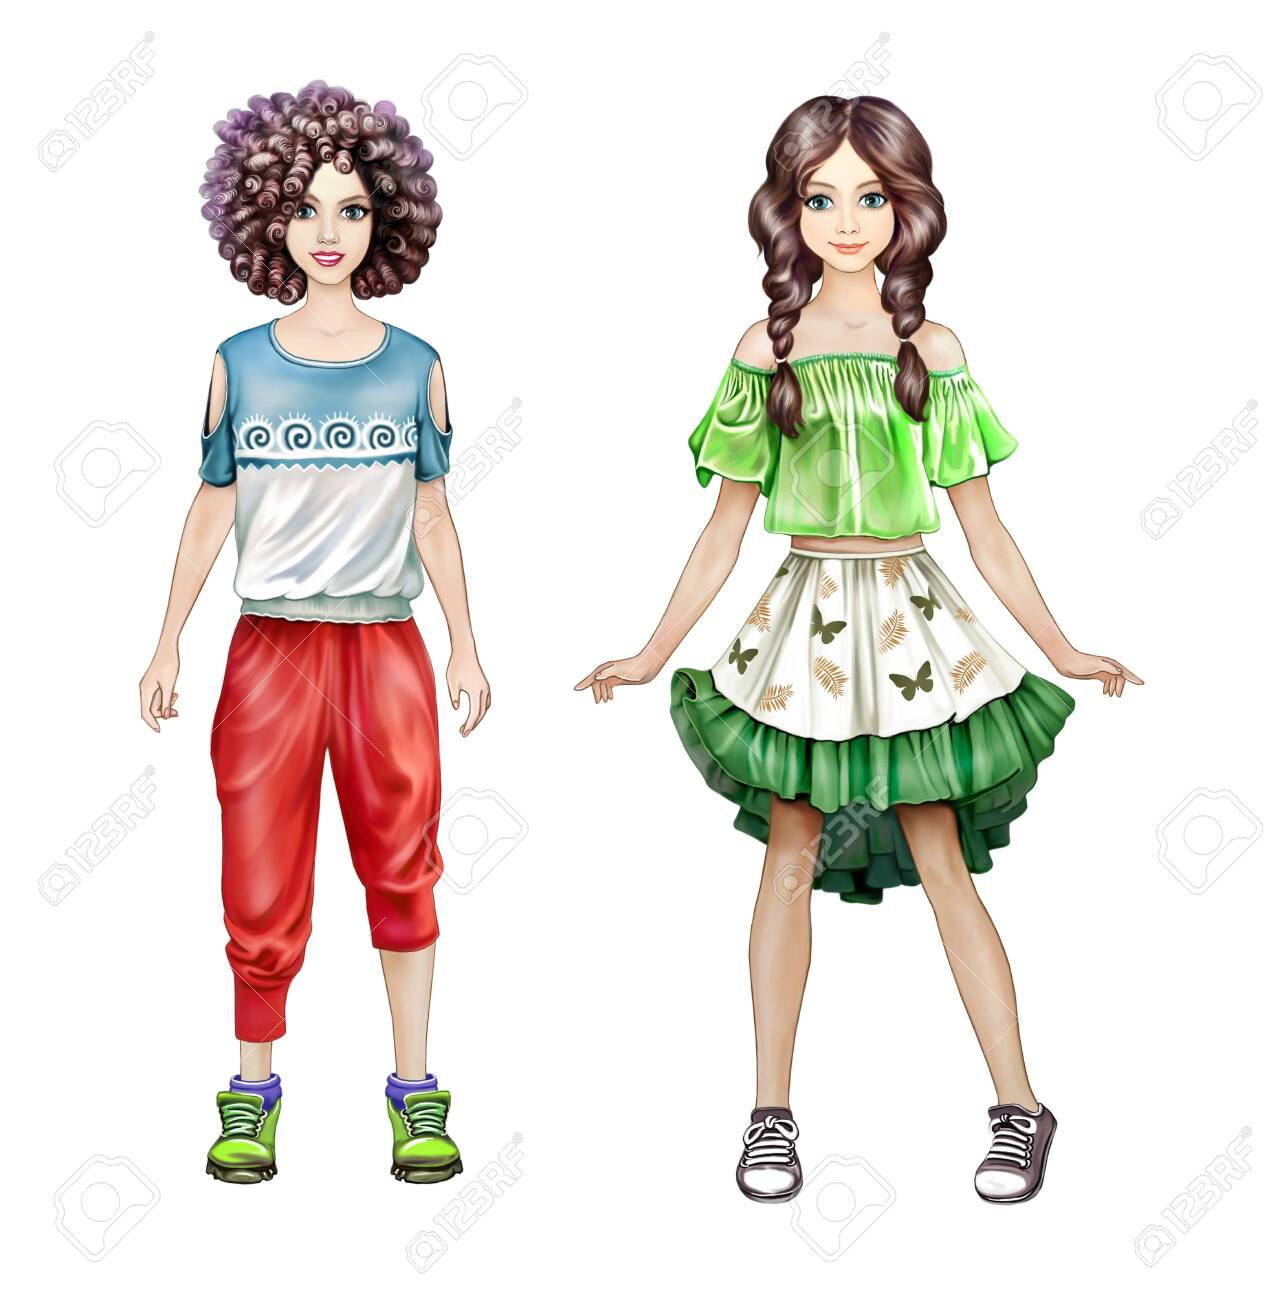 Teenage Girls In Fashion Clothes Trendy Schoolgirls Paper Dolls Stock Photo Picture And Royalty Free Image 147553414